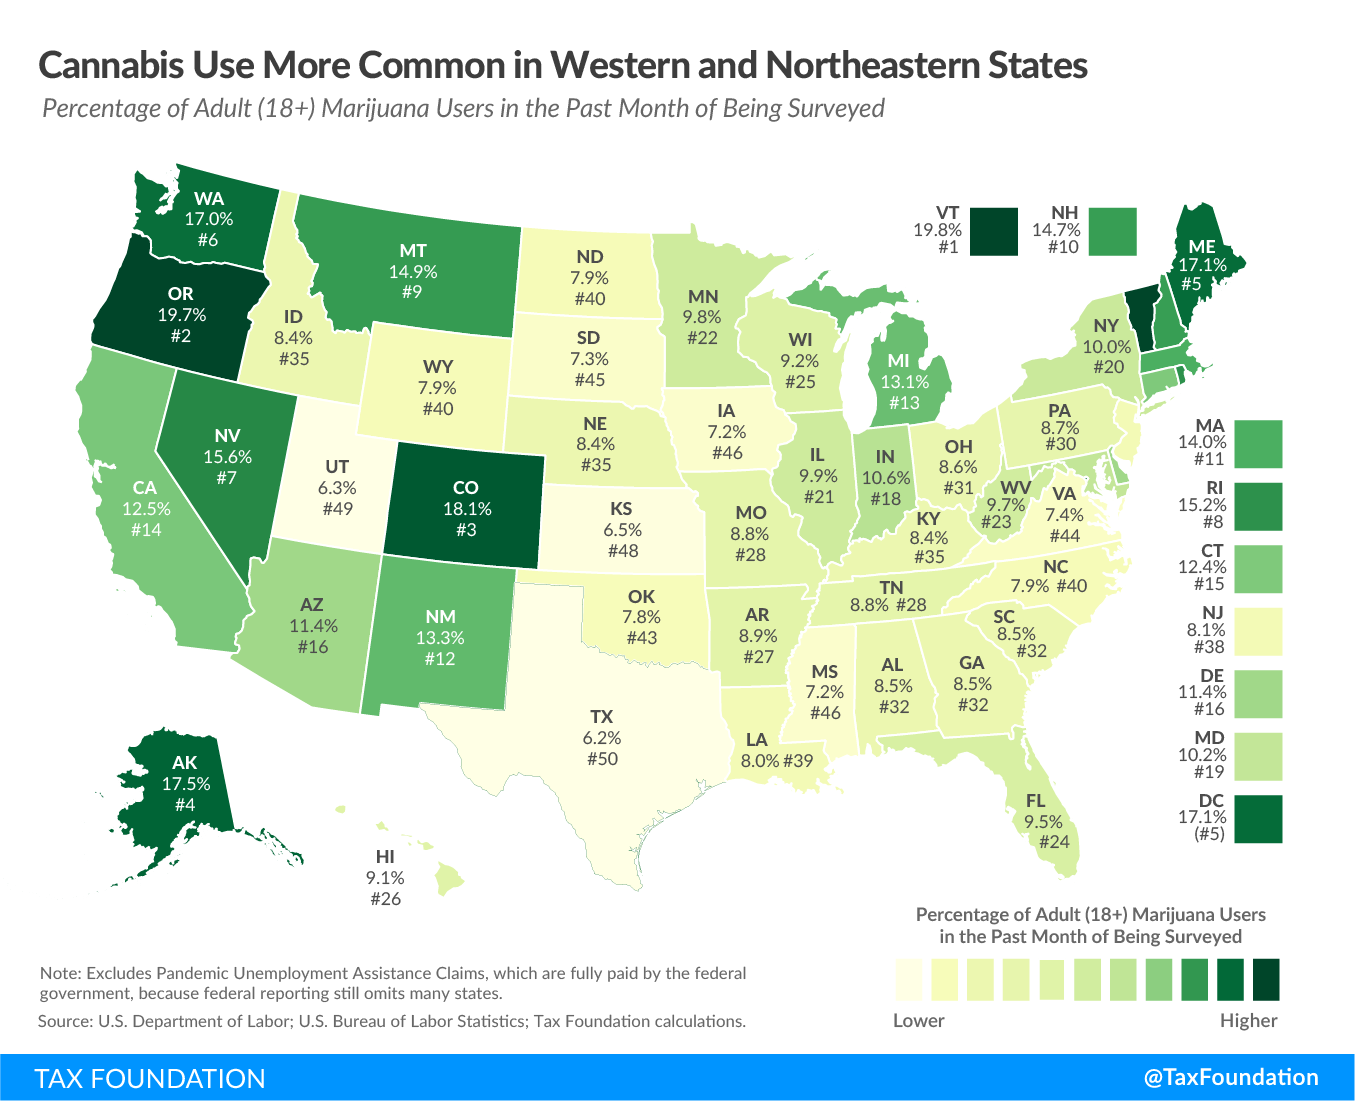 cannabis use more common in western and northeastern states, recreational marijuana tax, recreational marijuana taxation